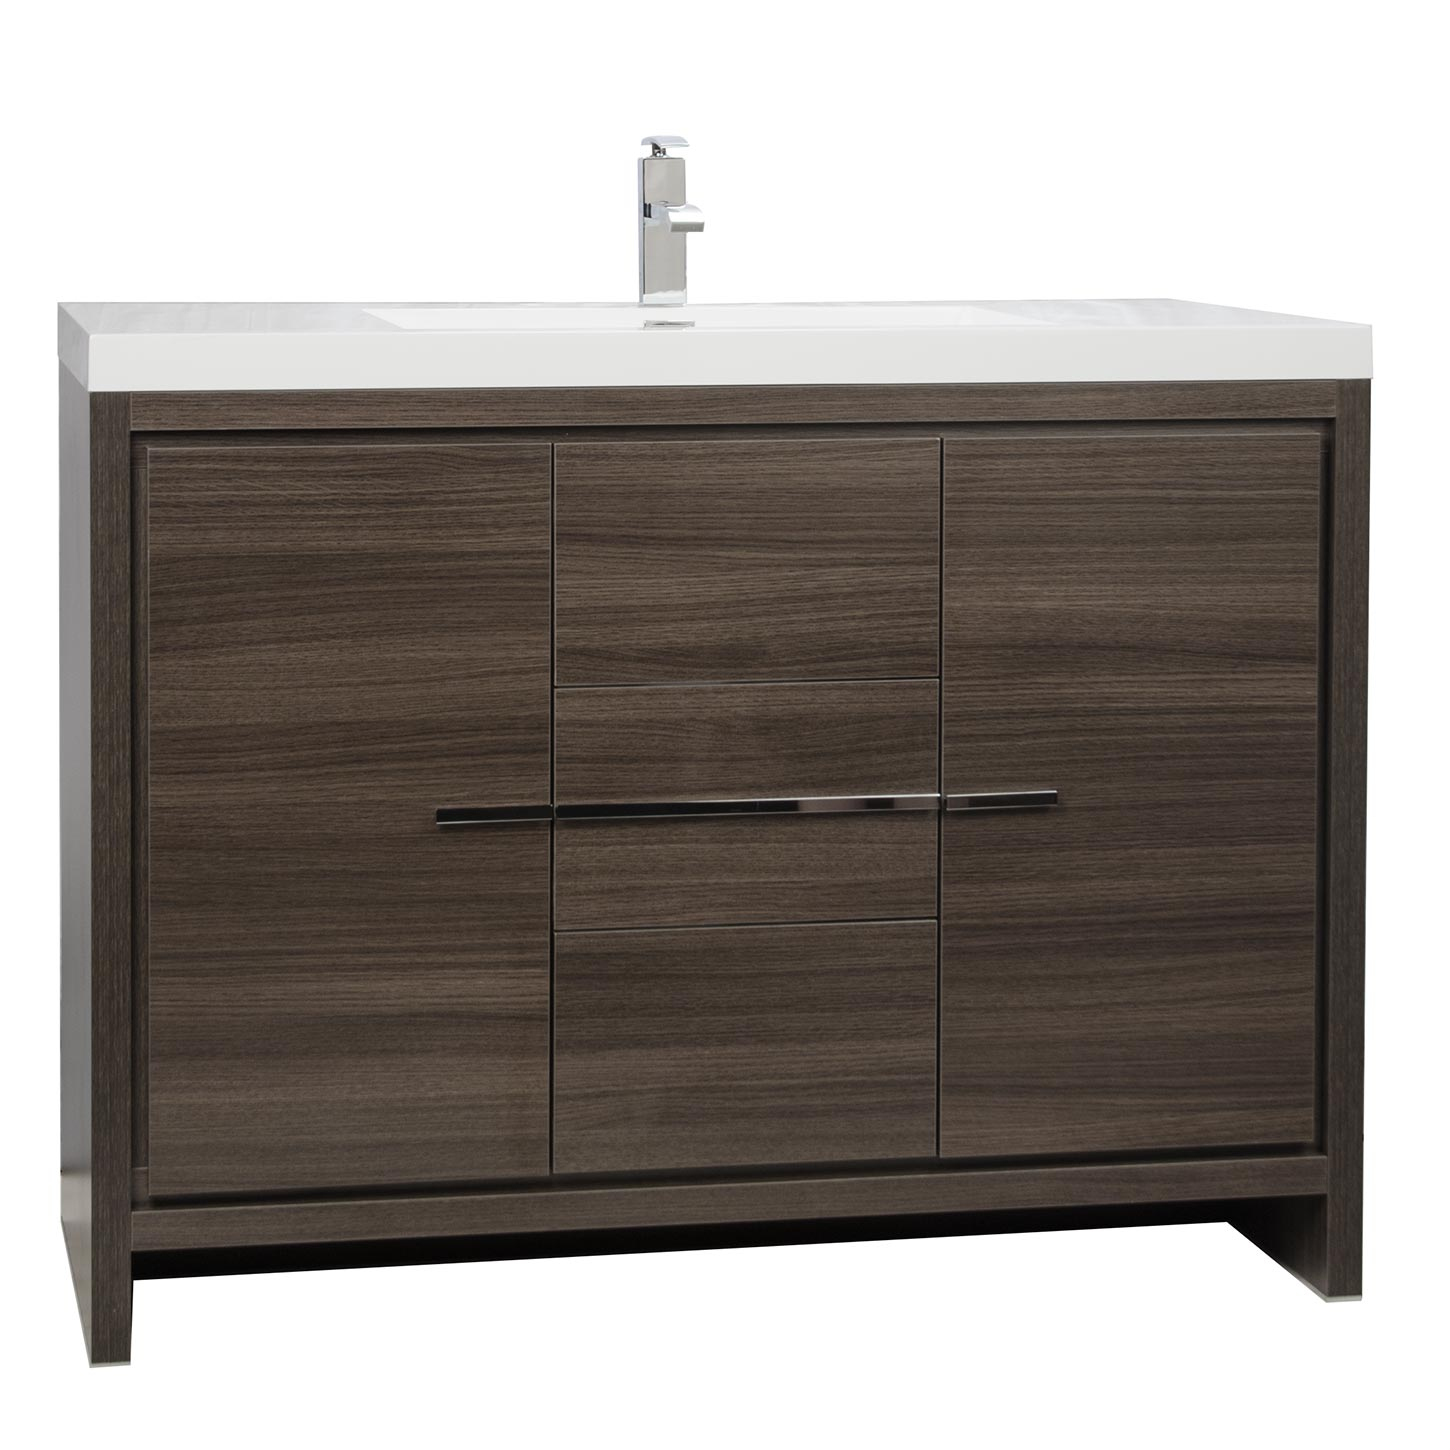 Fabulous Buy Cbi Enna 42 Inch Grey Oak Modern Bathroom Vanity Tn-La1065-Go On within Lovely 42 In Bathroom Vanity